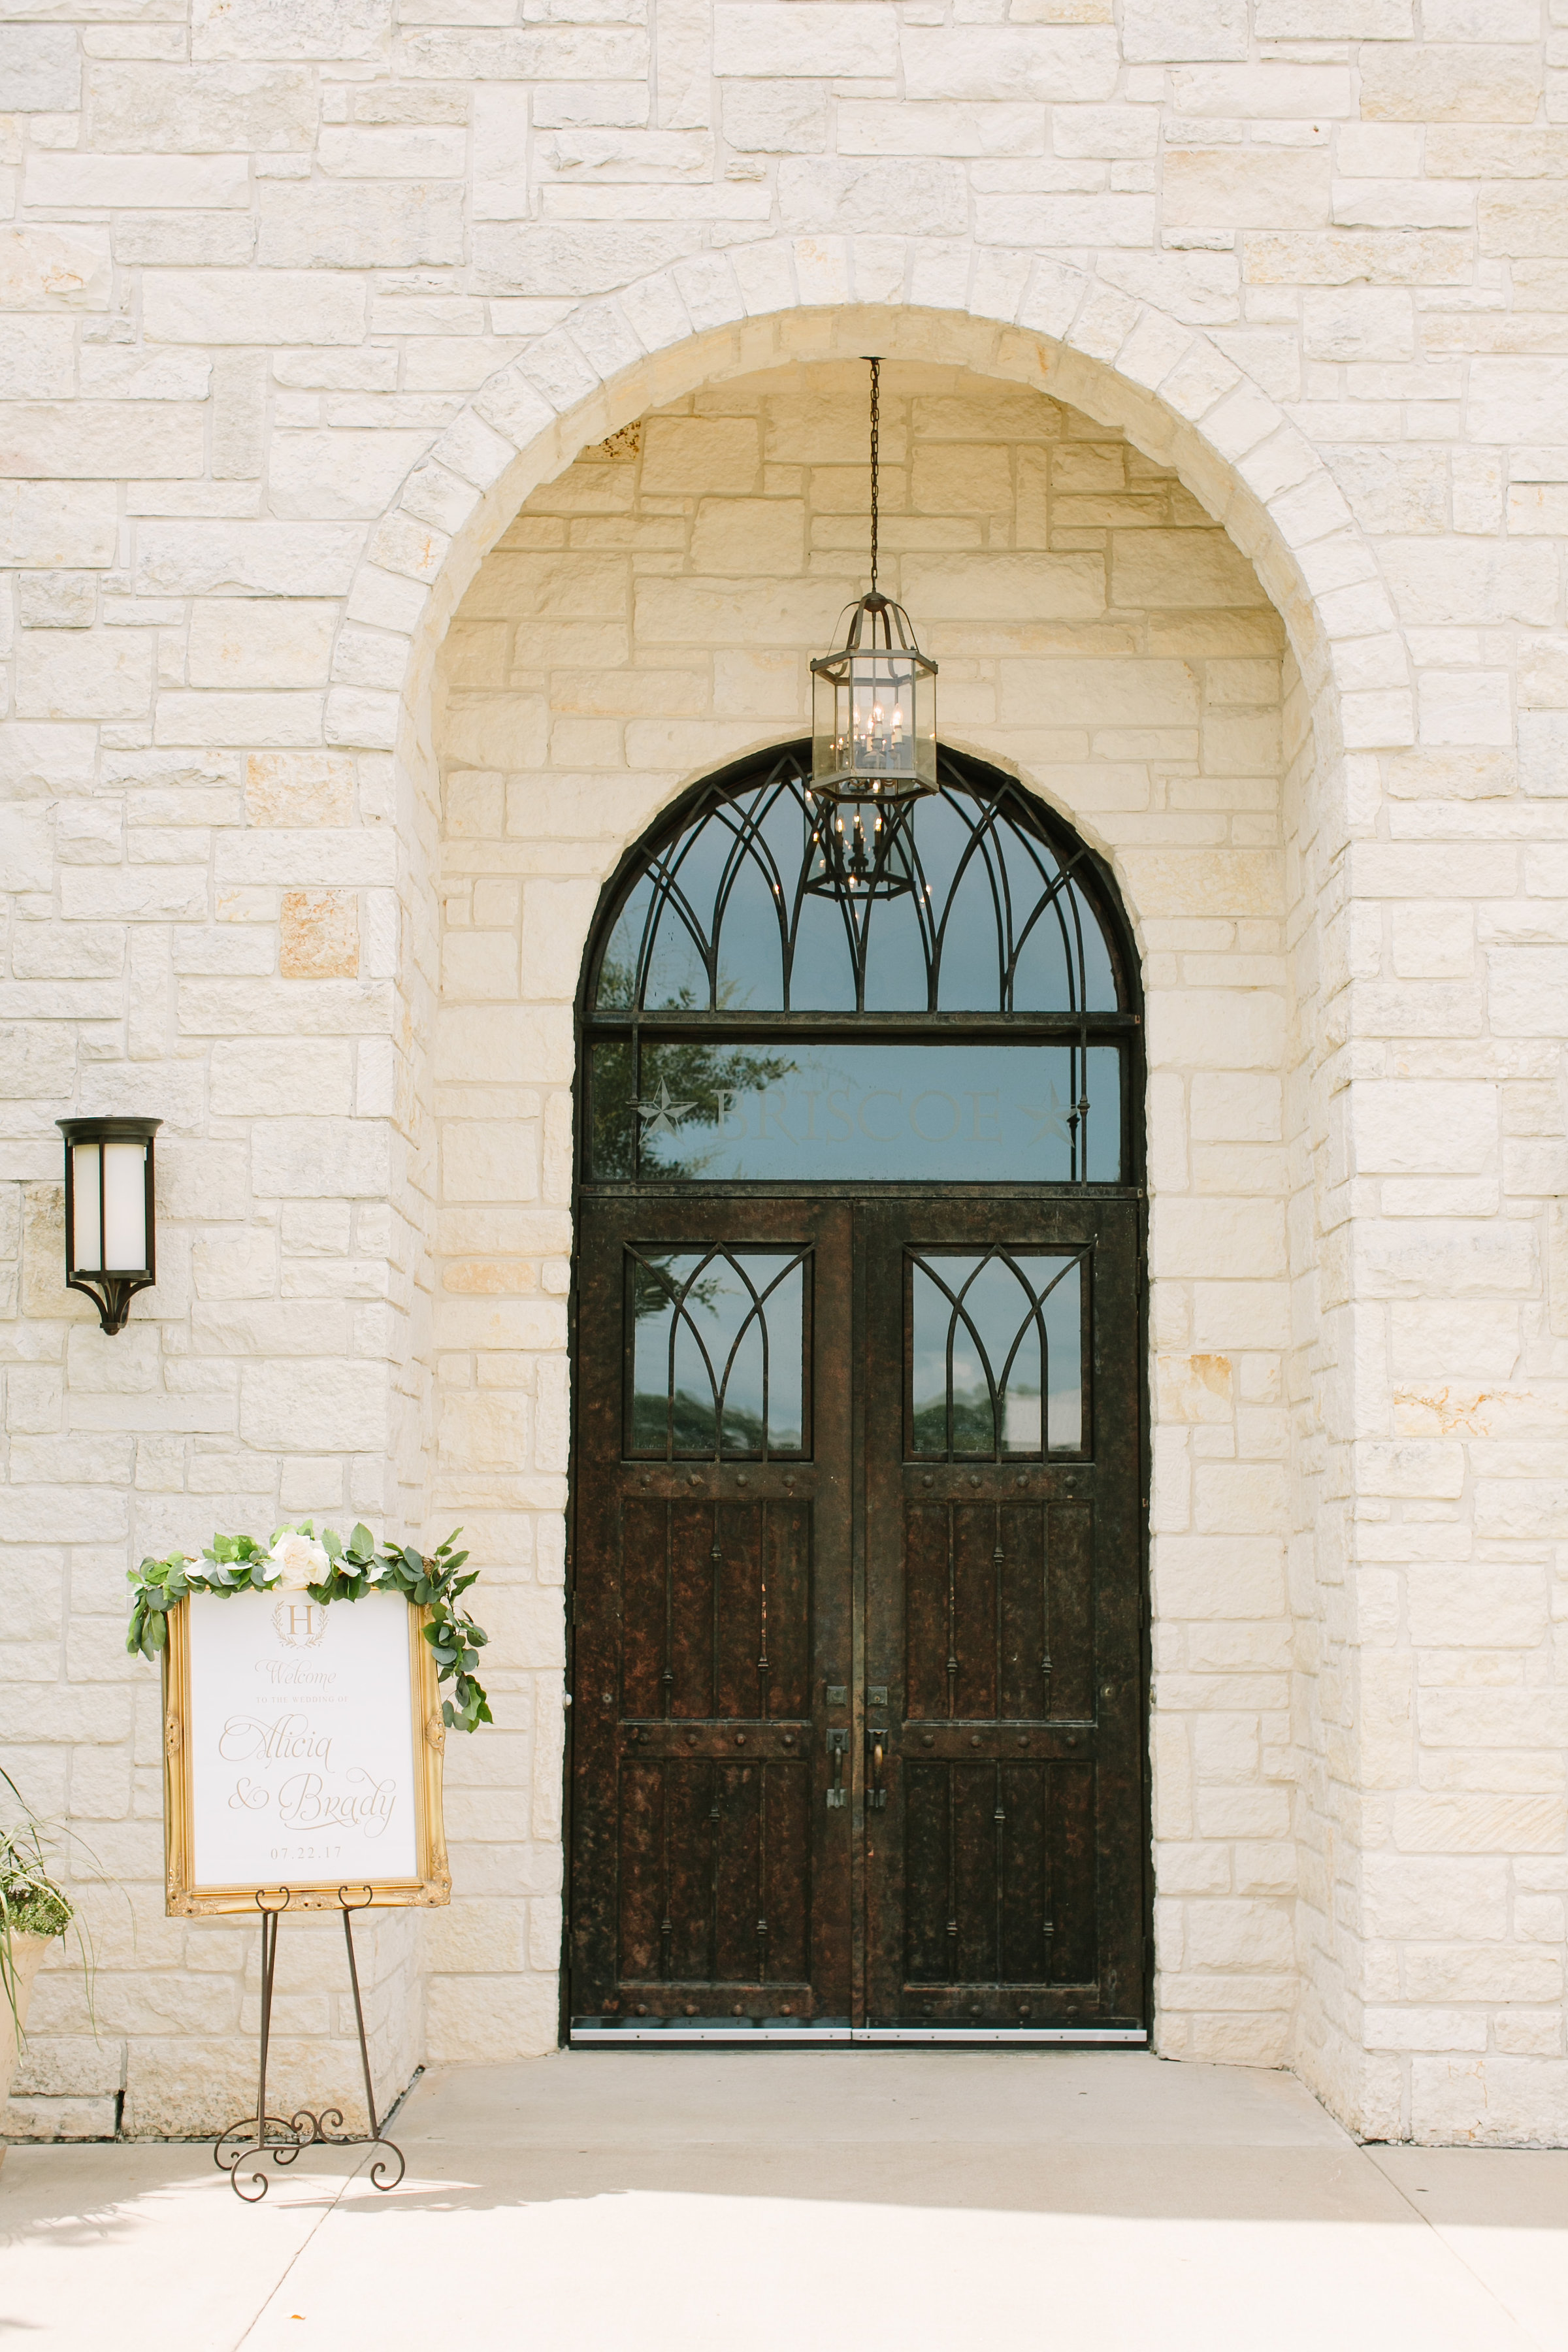 briscoe-manor-wedding-welcome-sign-garland-gold-greenery-white-floral-by-maxit-flower-design-in-houston-texas